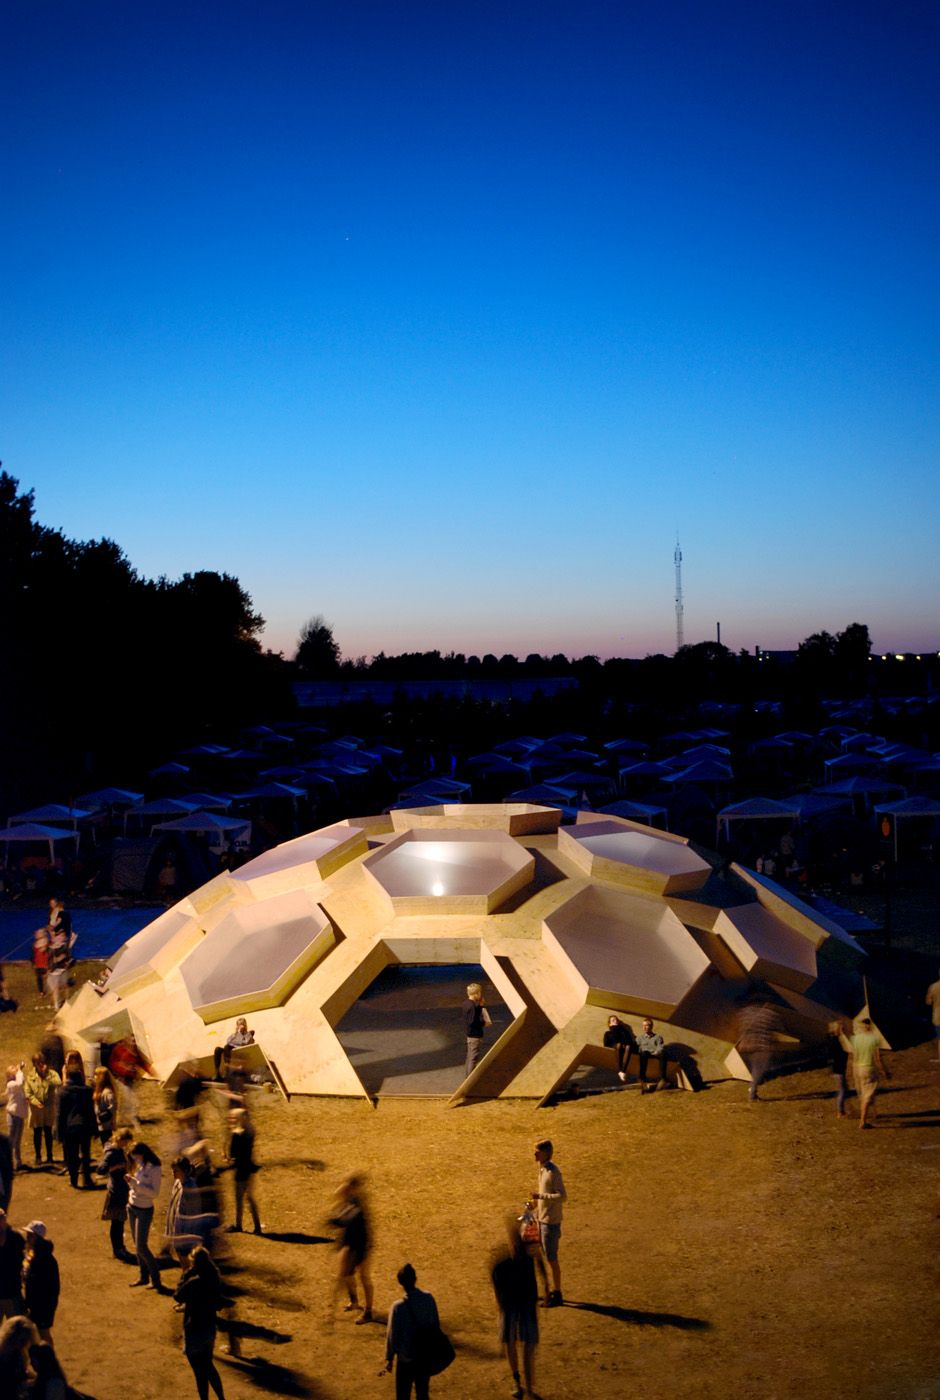 a plywood dome built for the famed